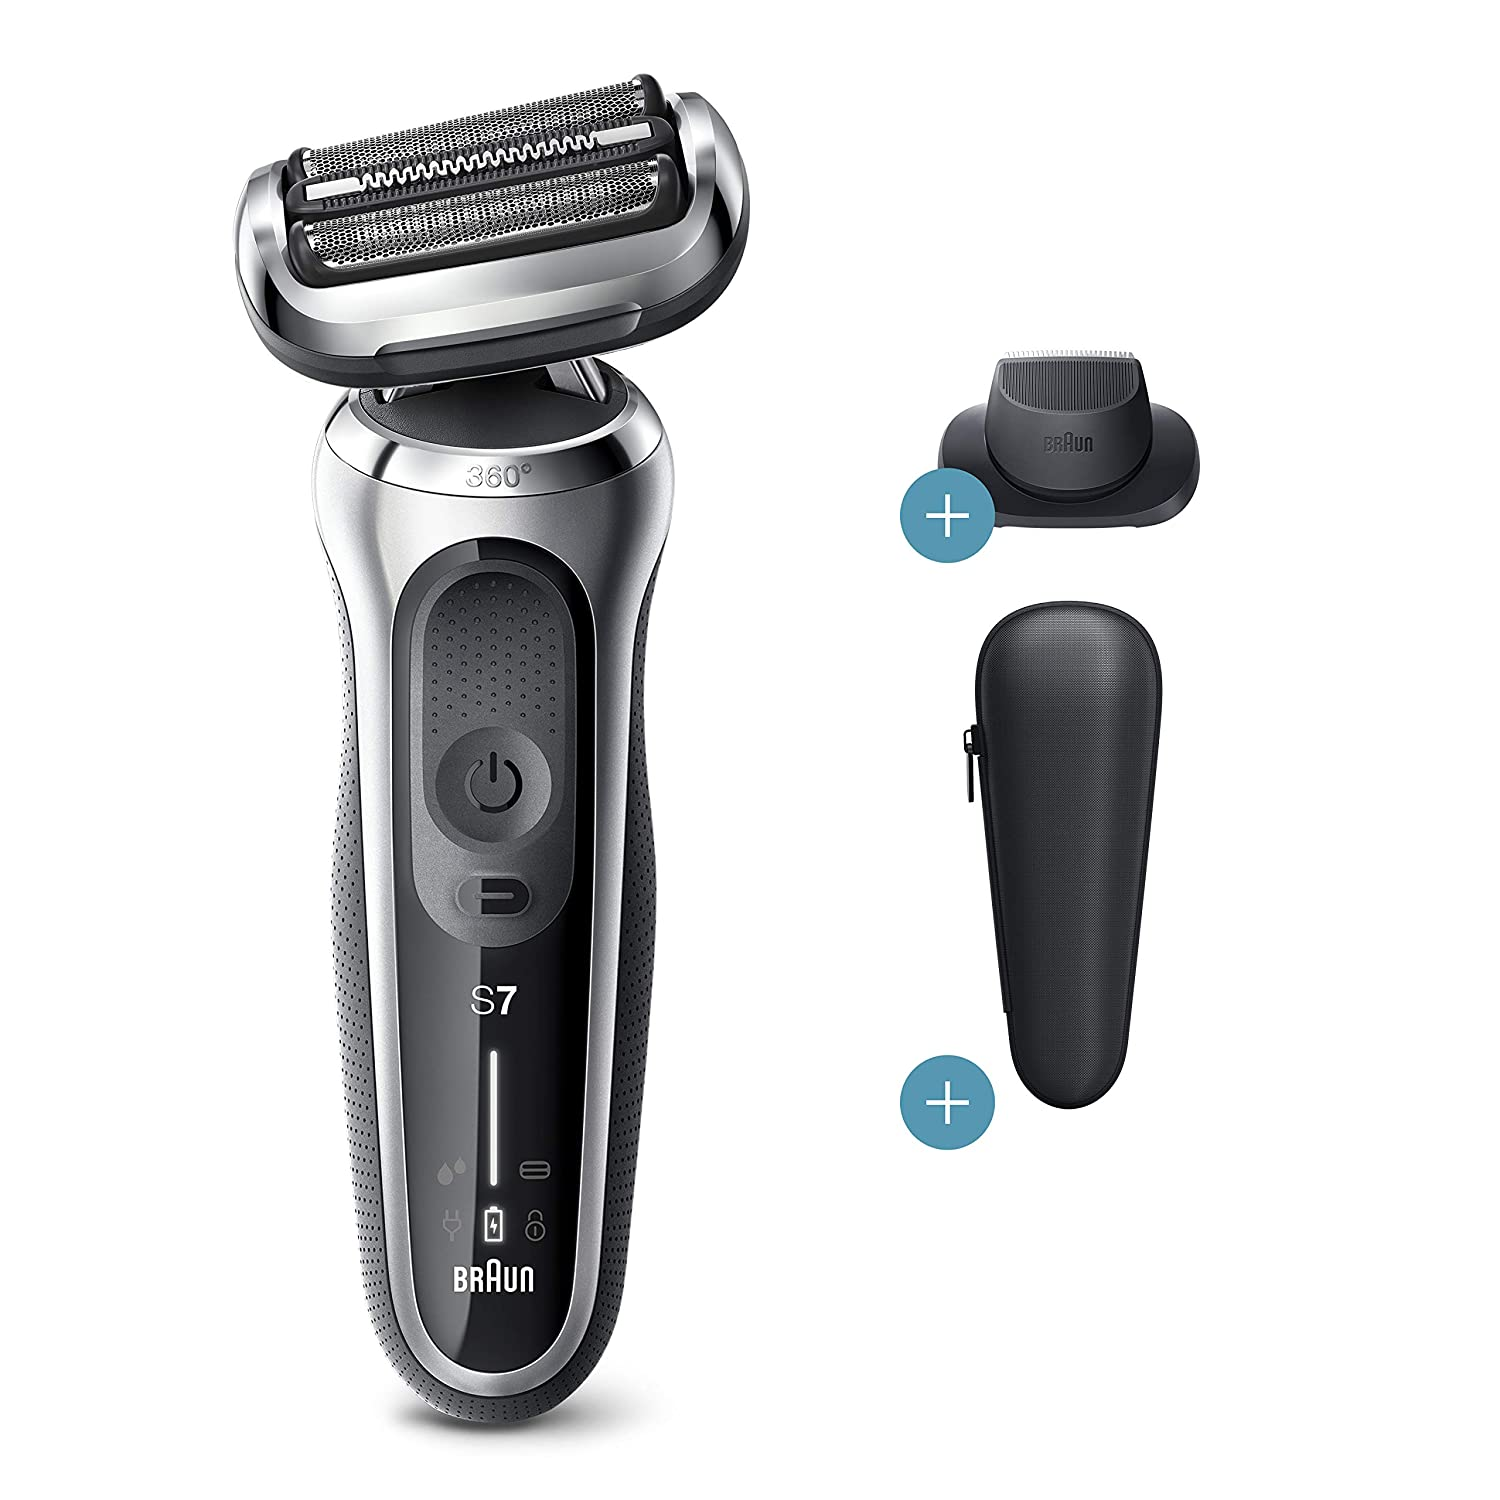 Braun Series 7 7020s Flex Electric Razor for Men with Precision Trimmer, Wet & Dry, Rechargeable, Cordless Foil Shaver, Silver